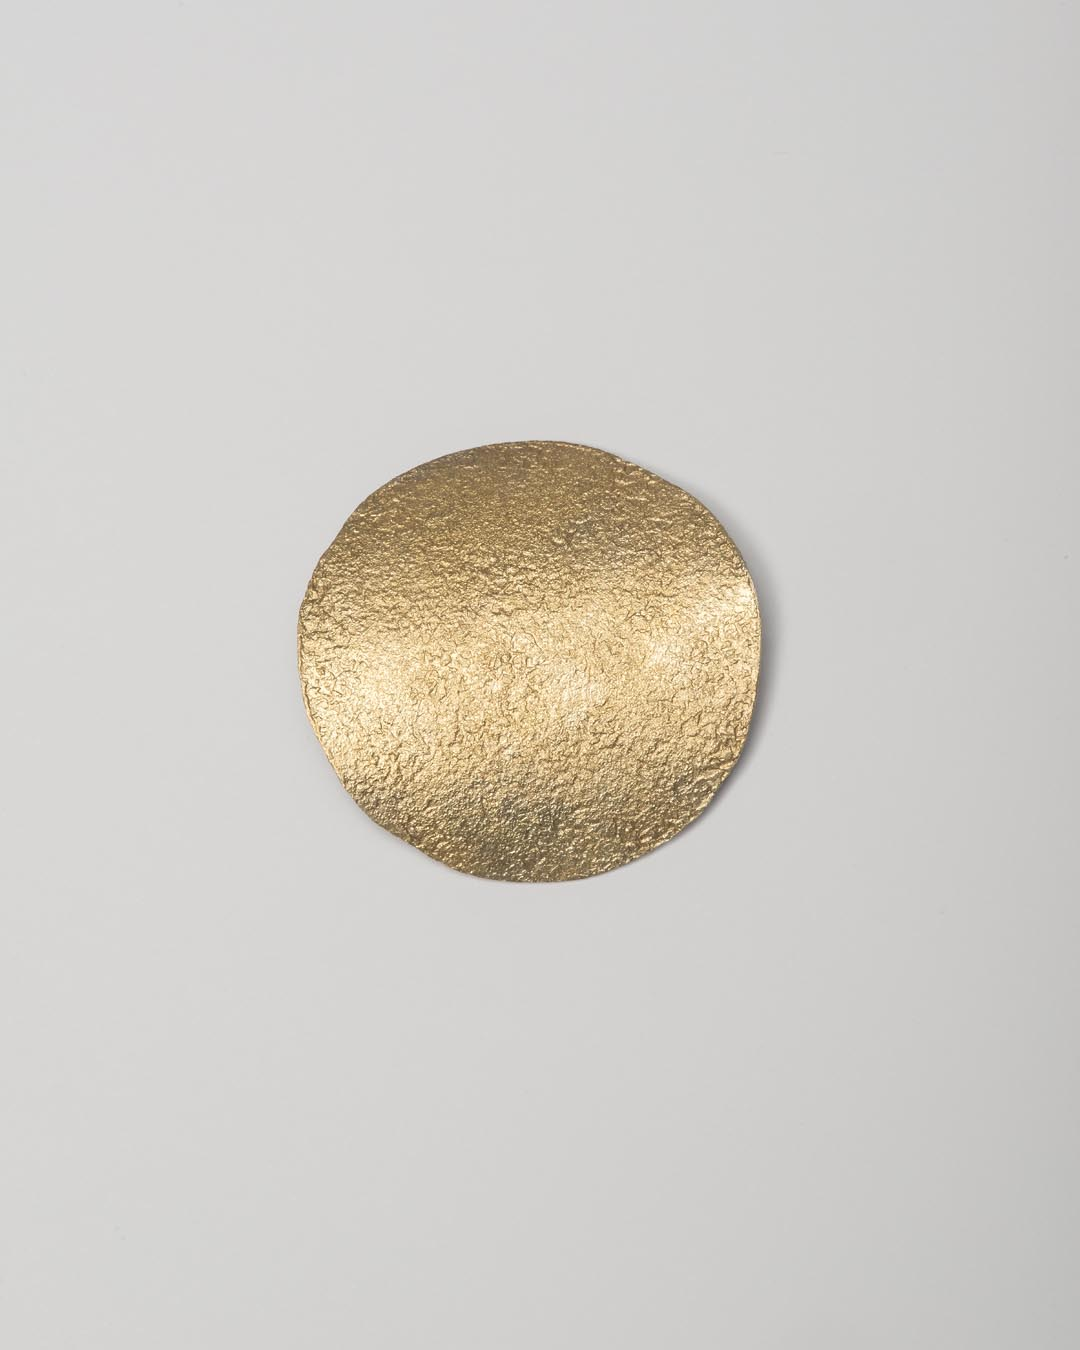 Yasuki Hiramatsu, untitled, brooch/pendant; gold-plated silver, 52 x 51 x 9 mm, €750